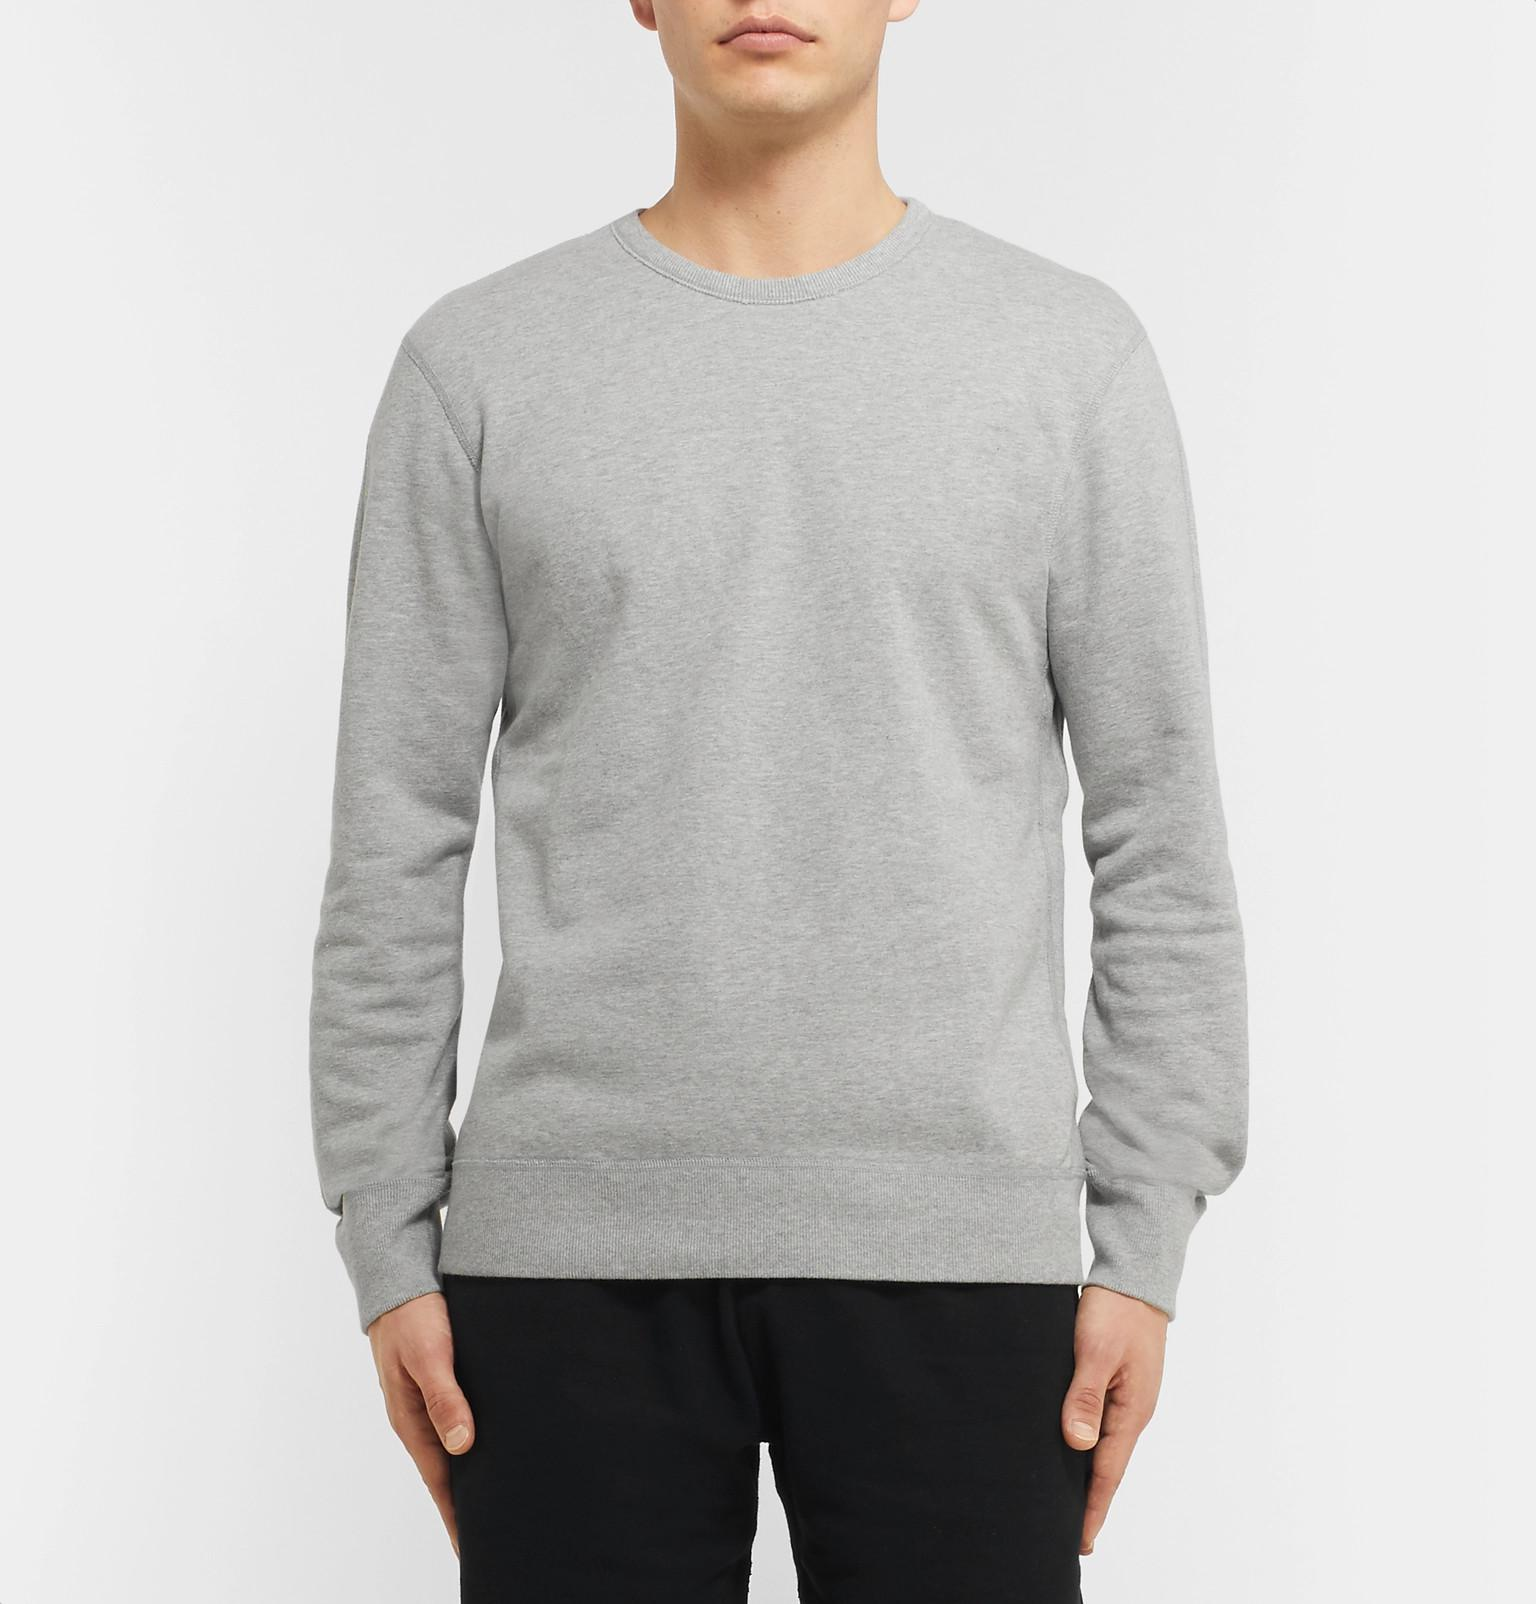 For Cotton View Champ Men Sweatshirt Lyst Fullscreen Reigning Gray Jersey Loopback xfnZYF